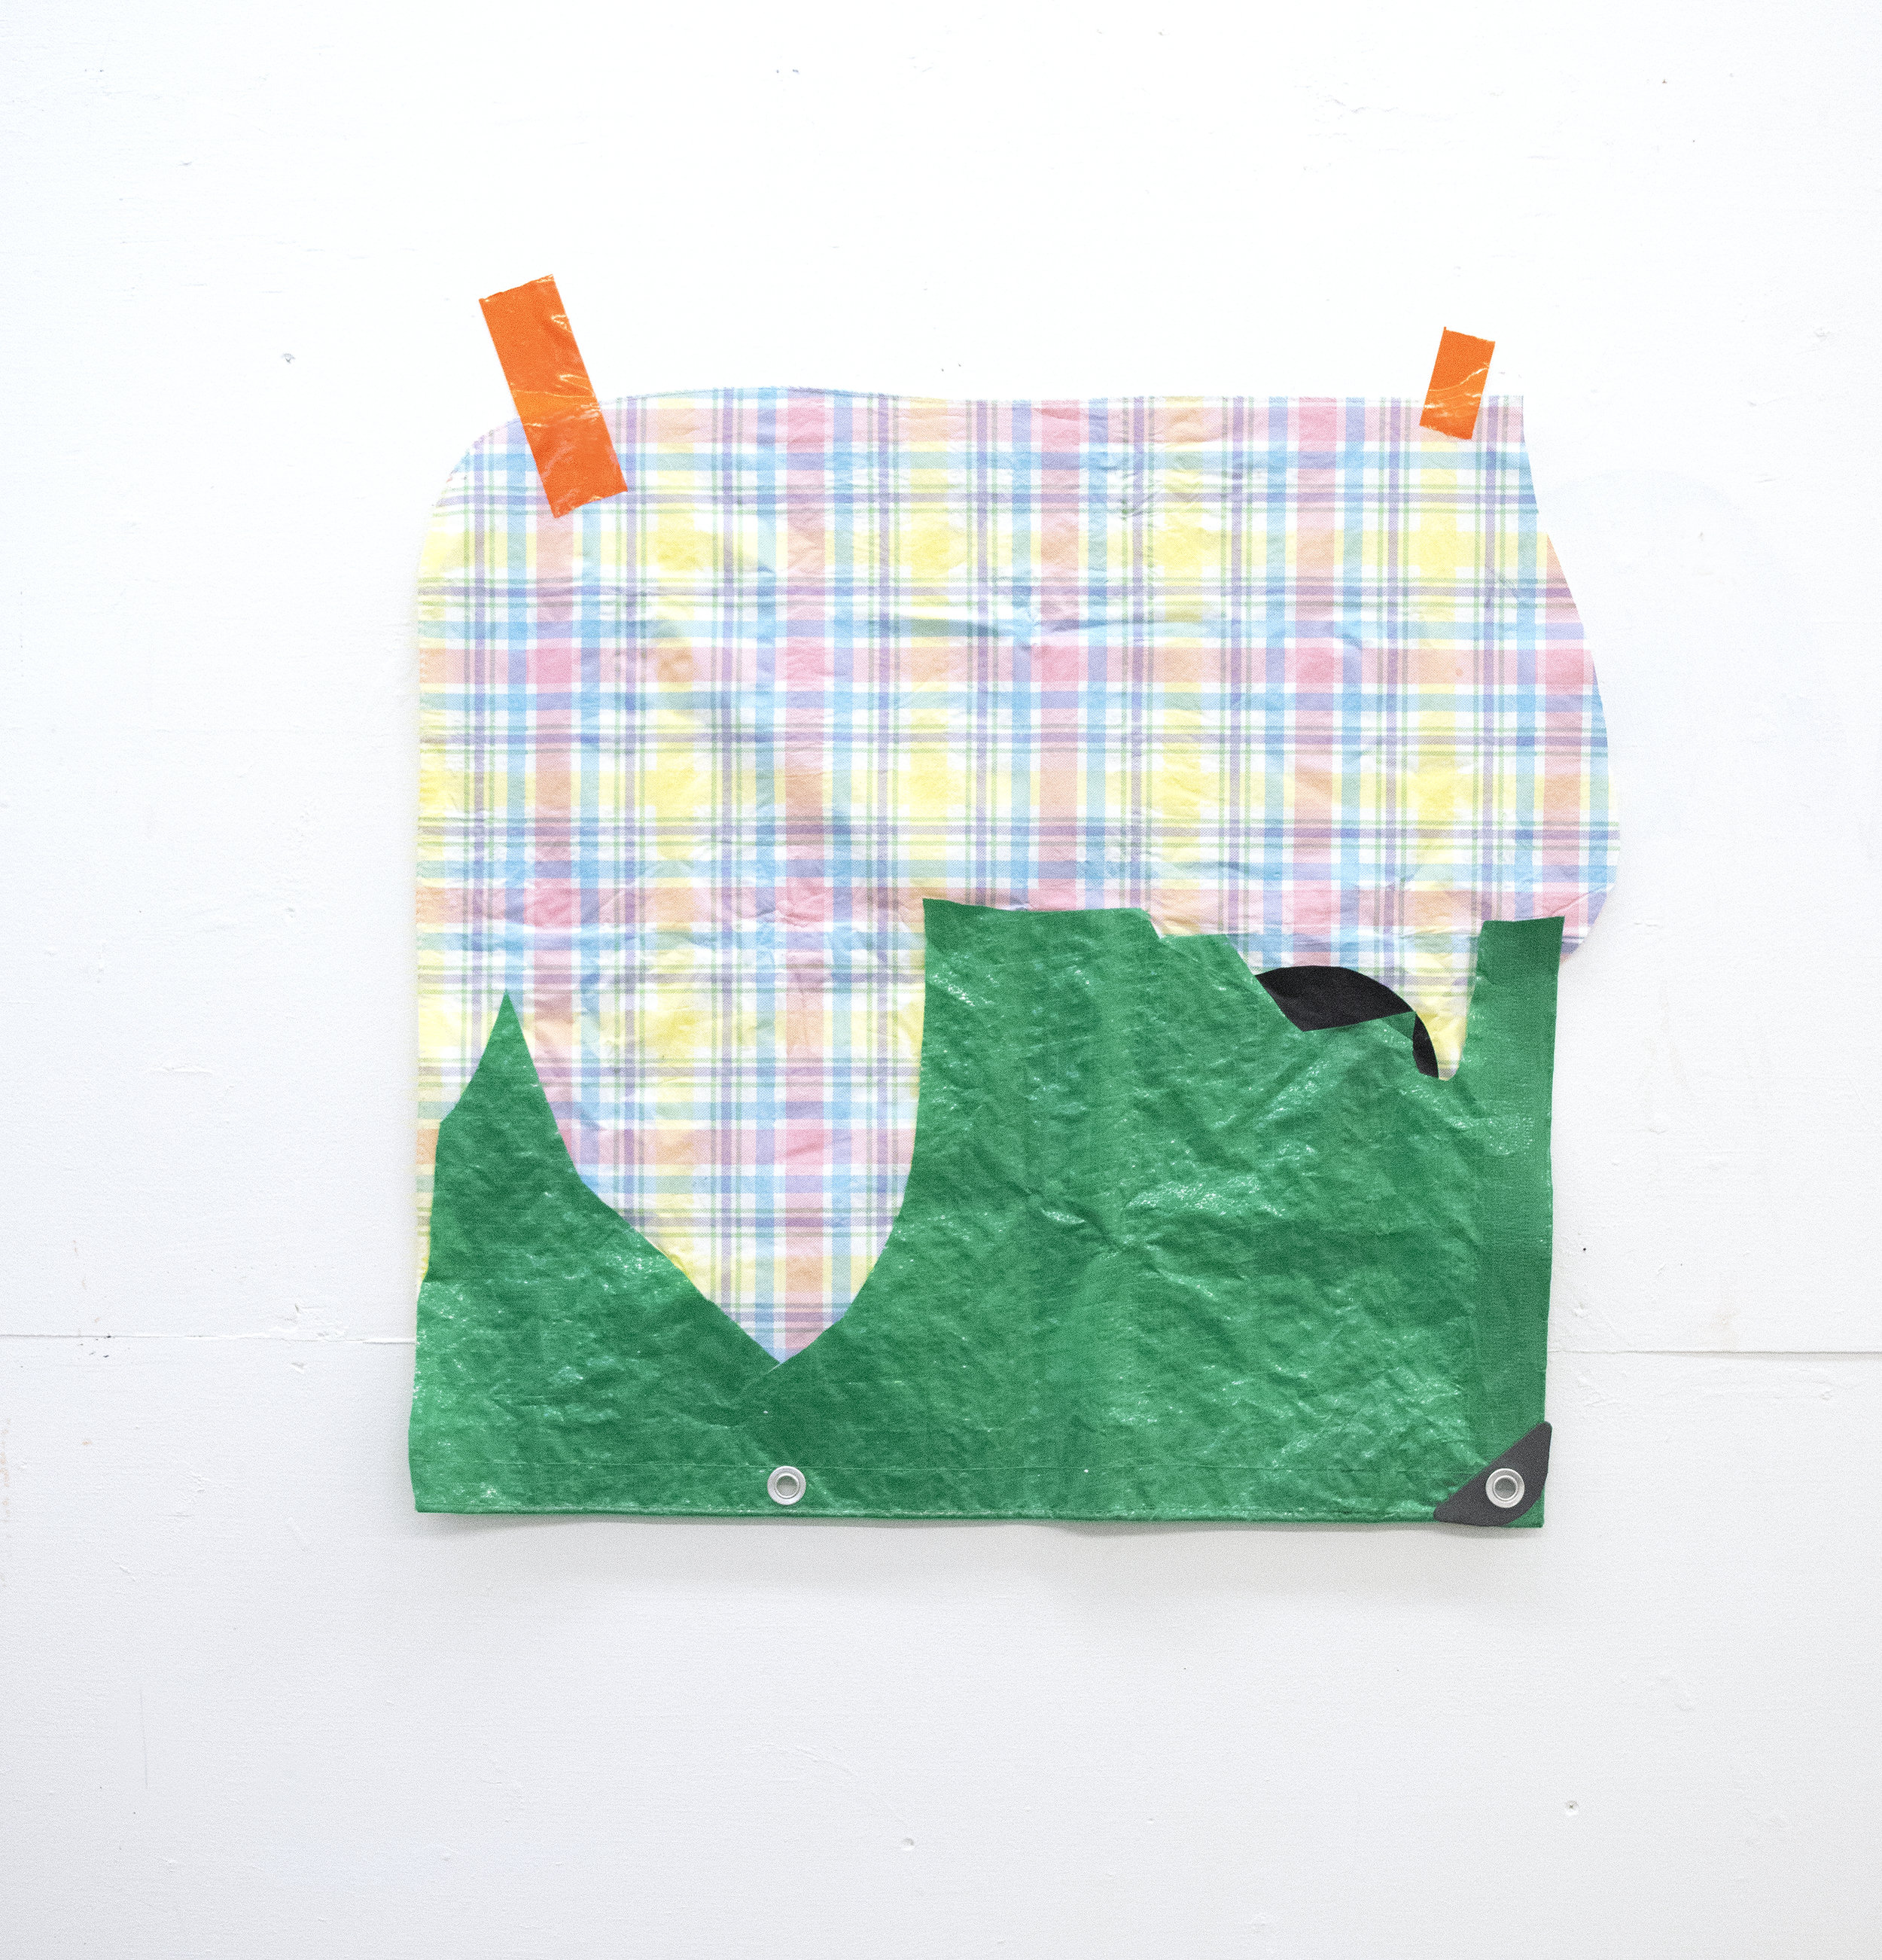 ground-cover  (2018). Picnic blanket, tarp, contact paper, duct tape. Image courtesy of the artist.